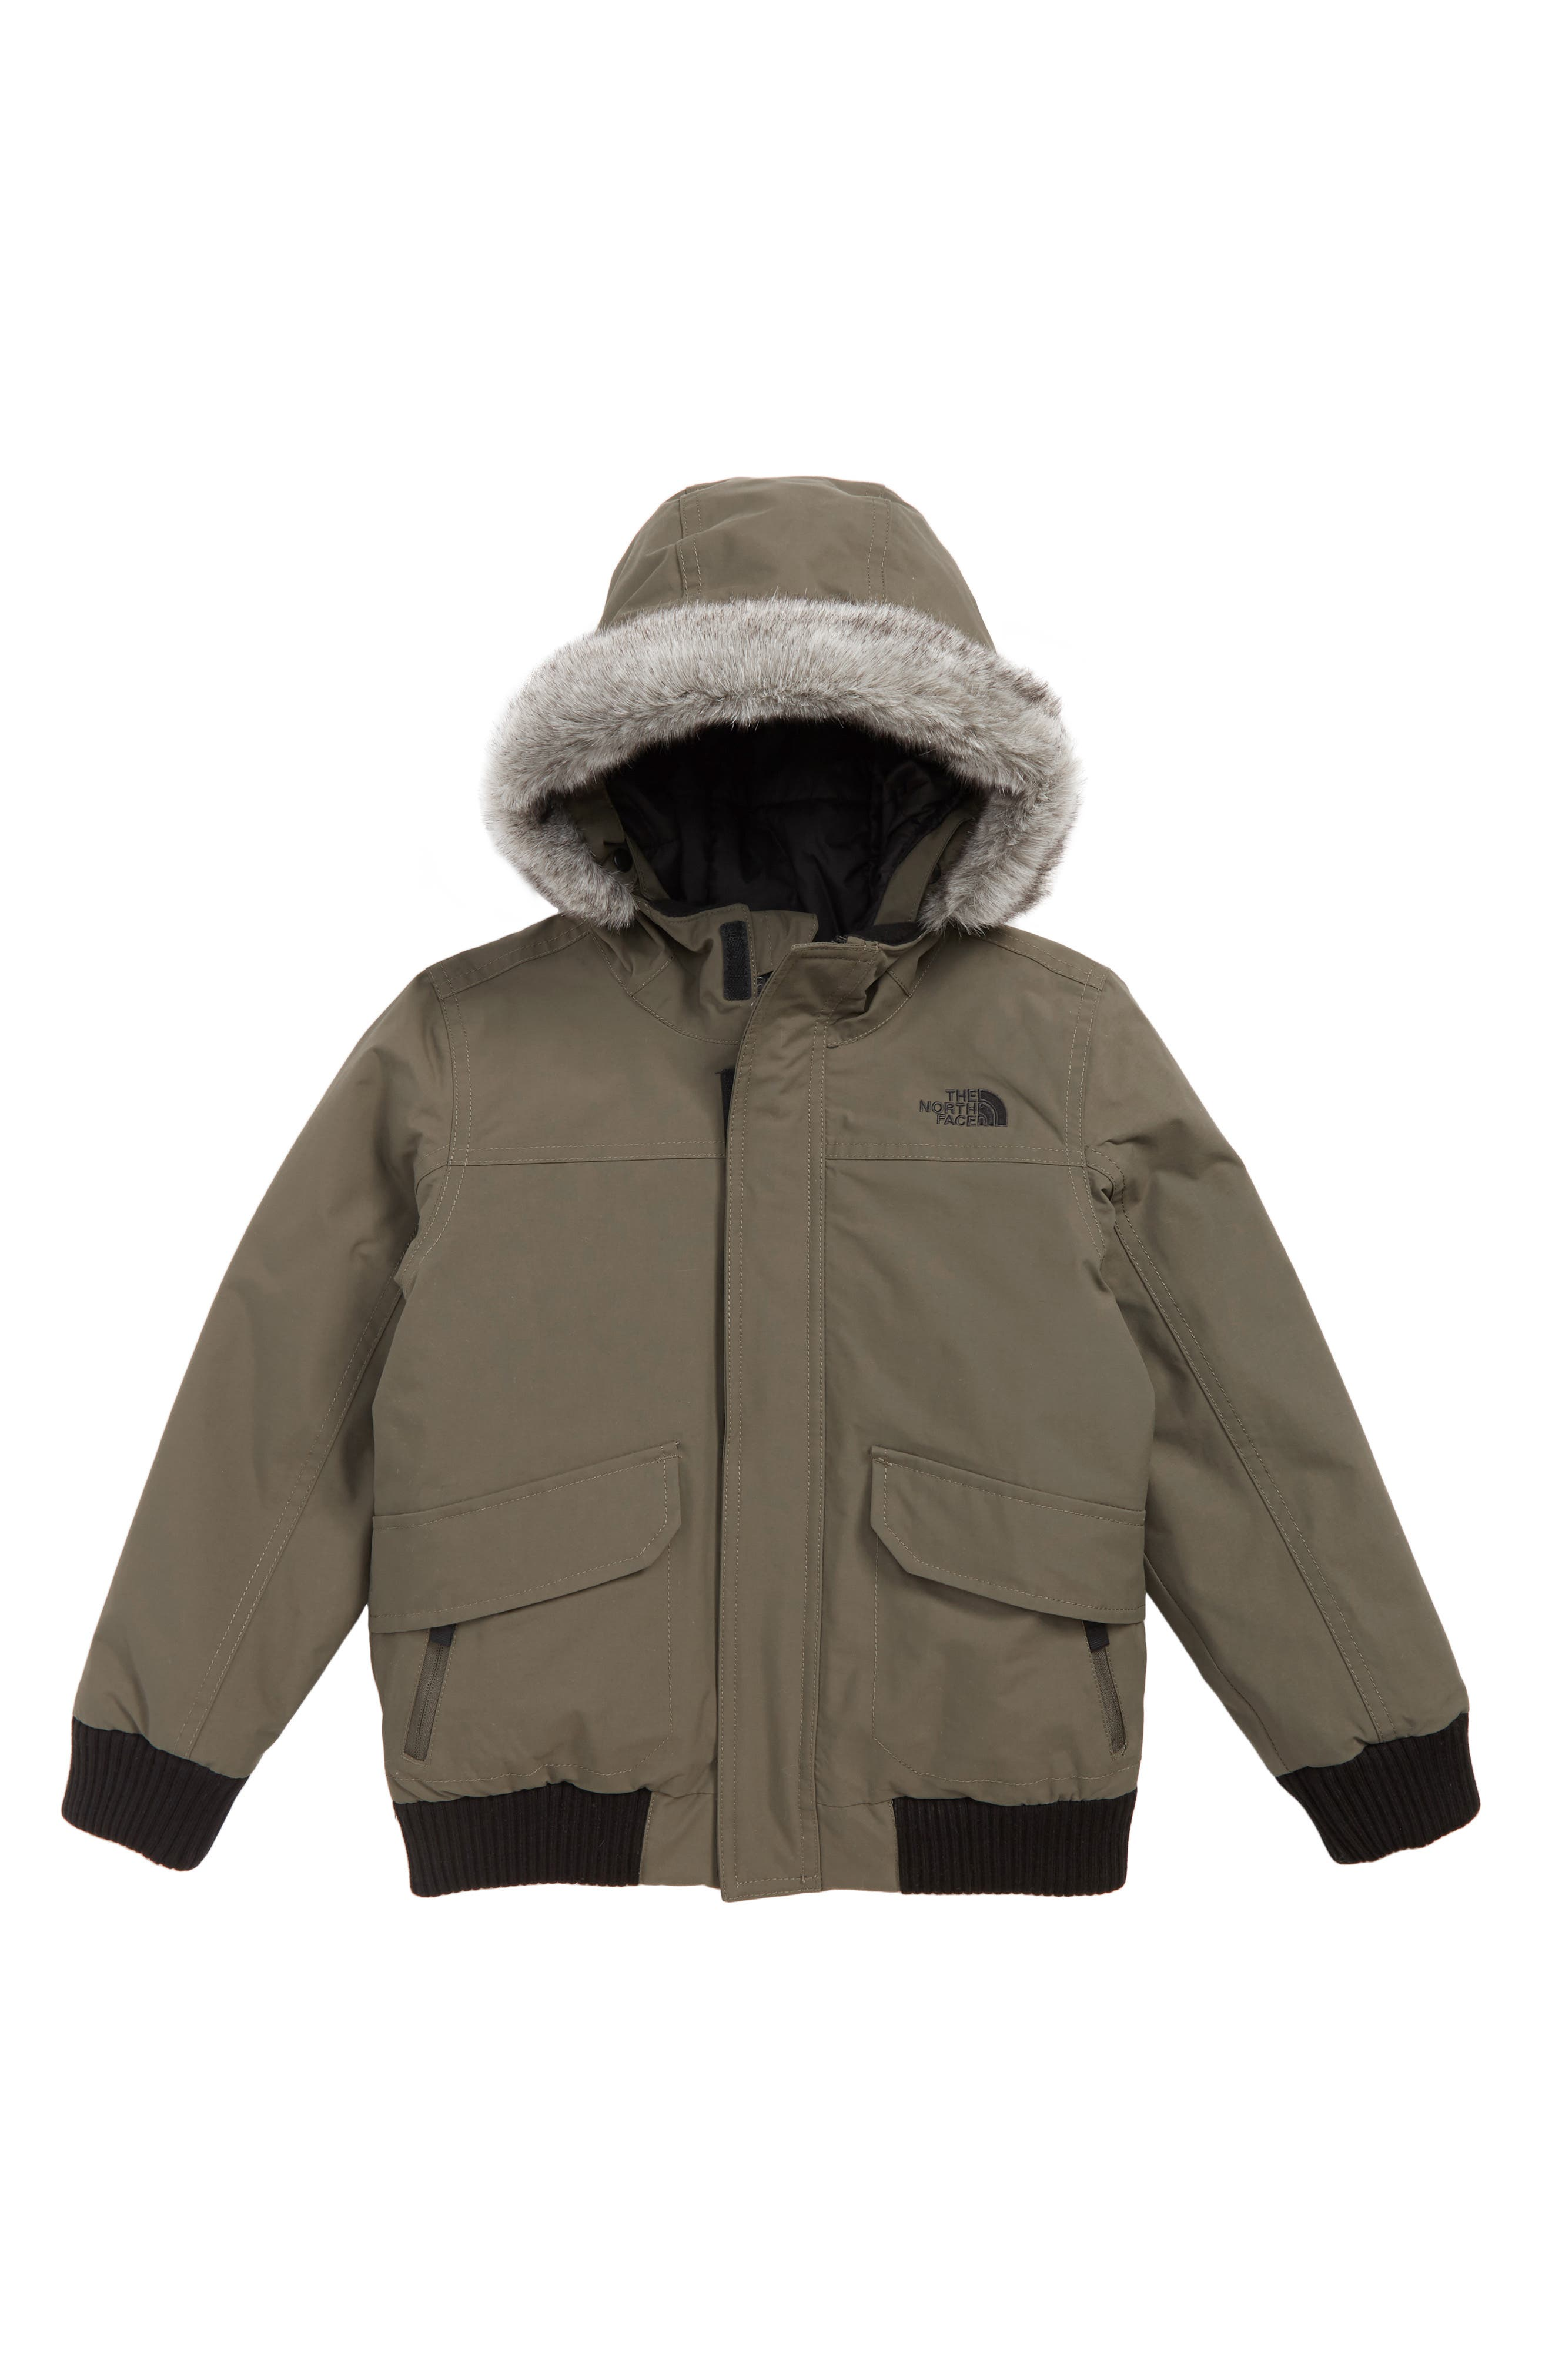 Toddler Boys The North Face Gotham Hooded Waterproof 550Fill Power Down Jacket Size 3T  Green